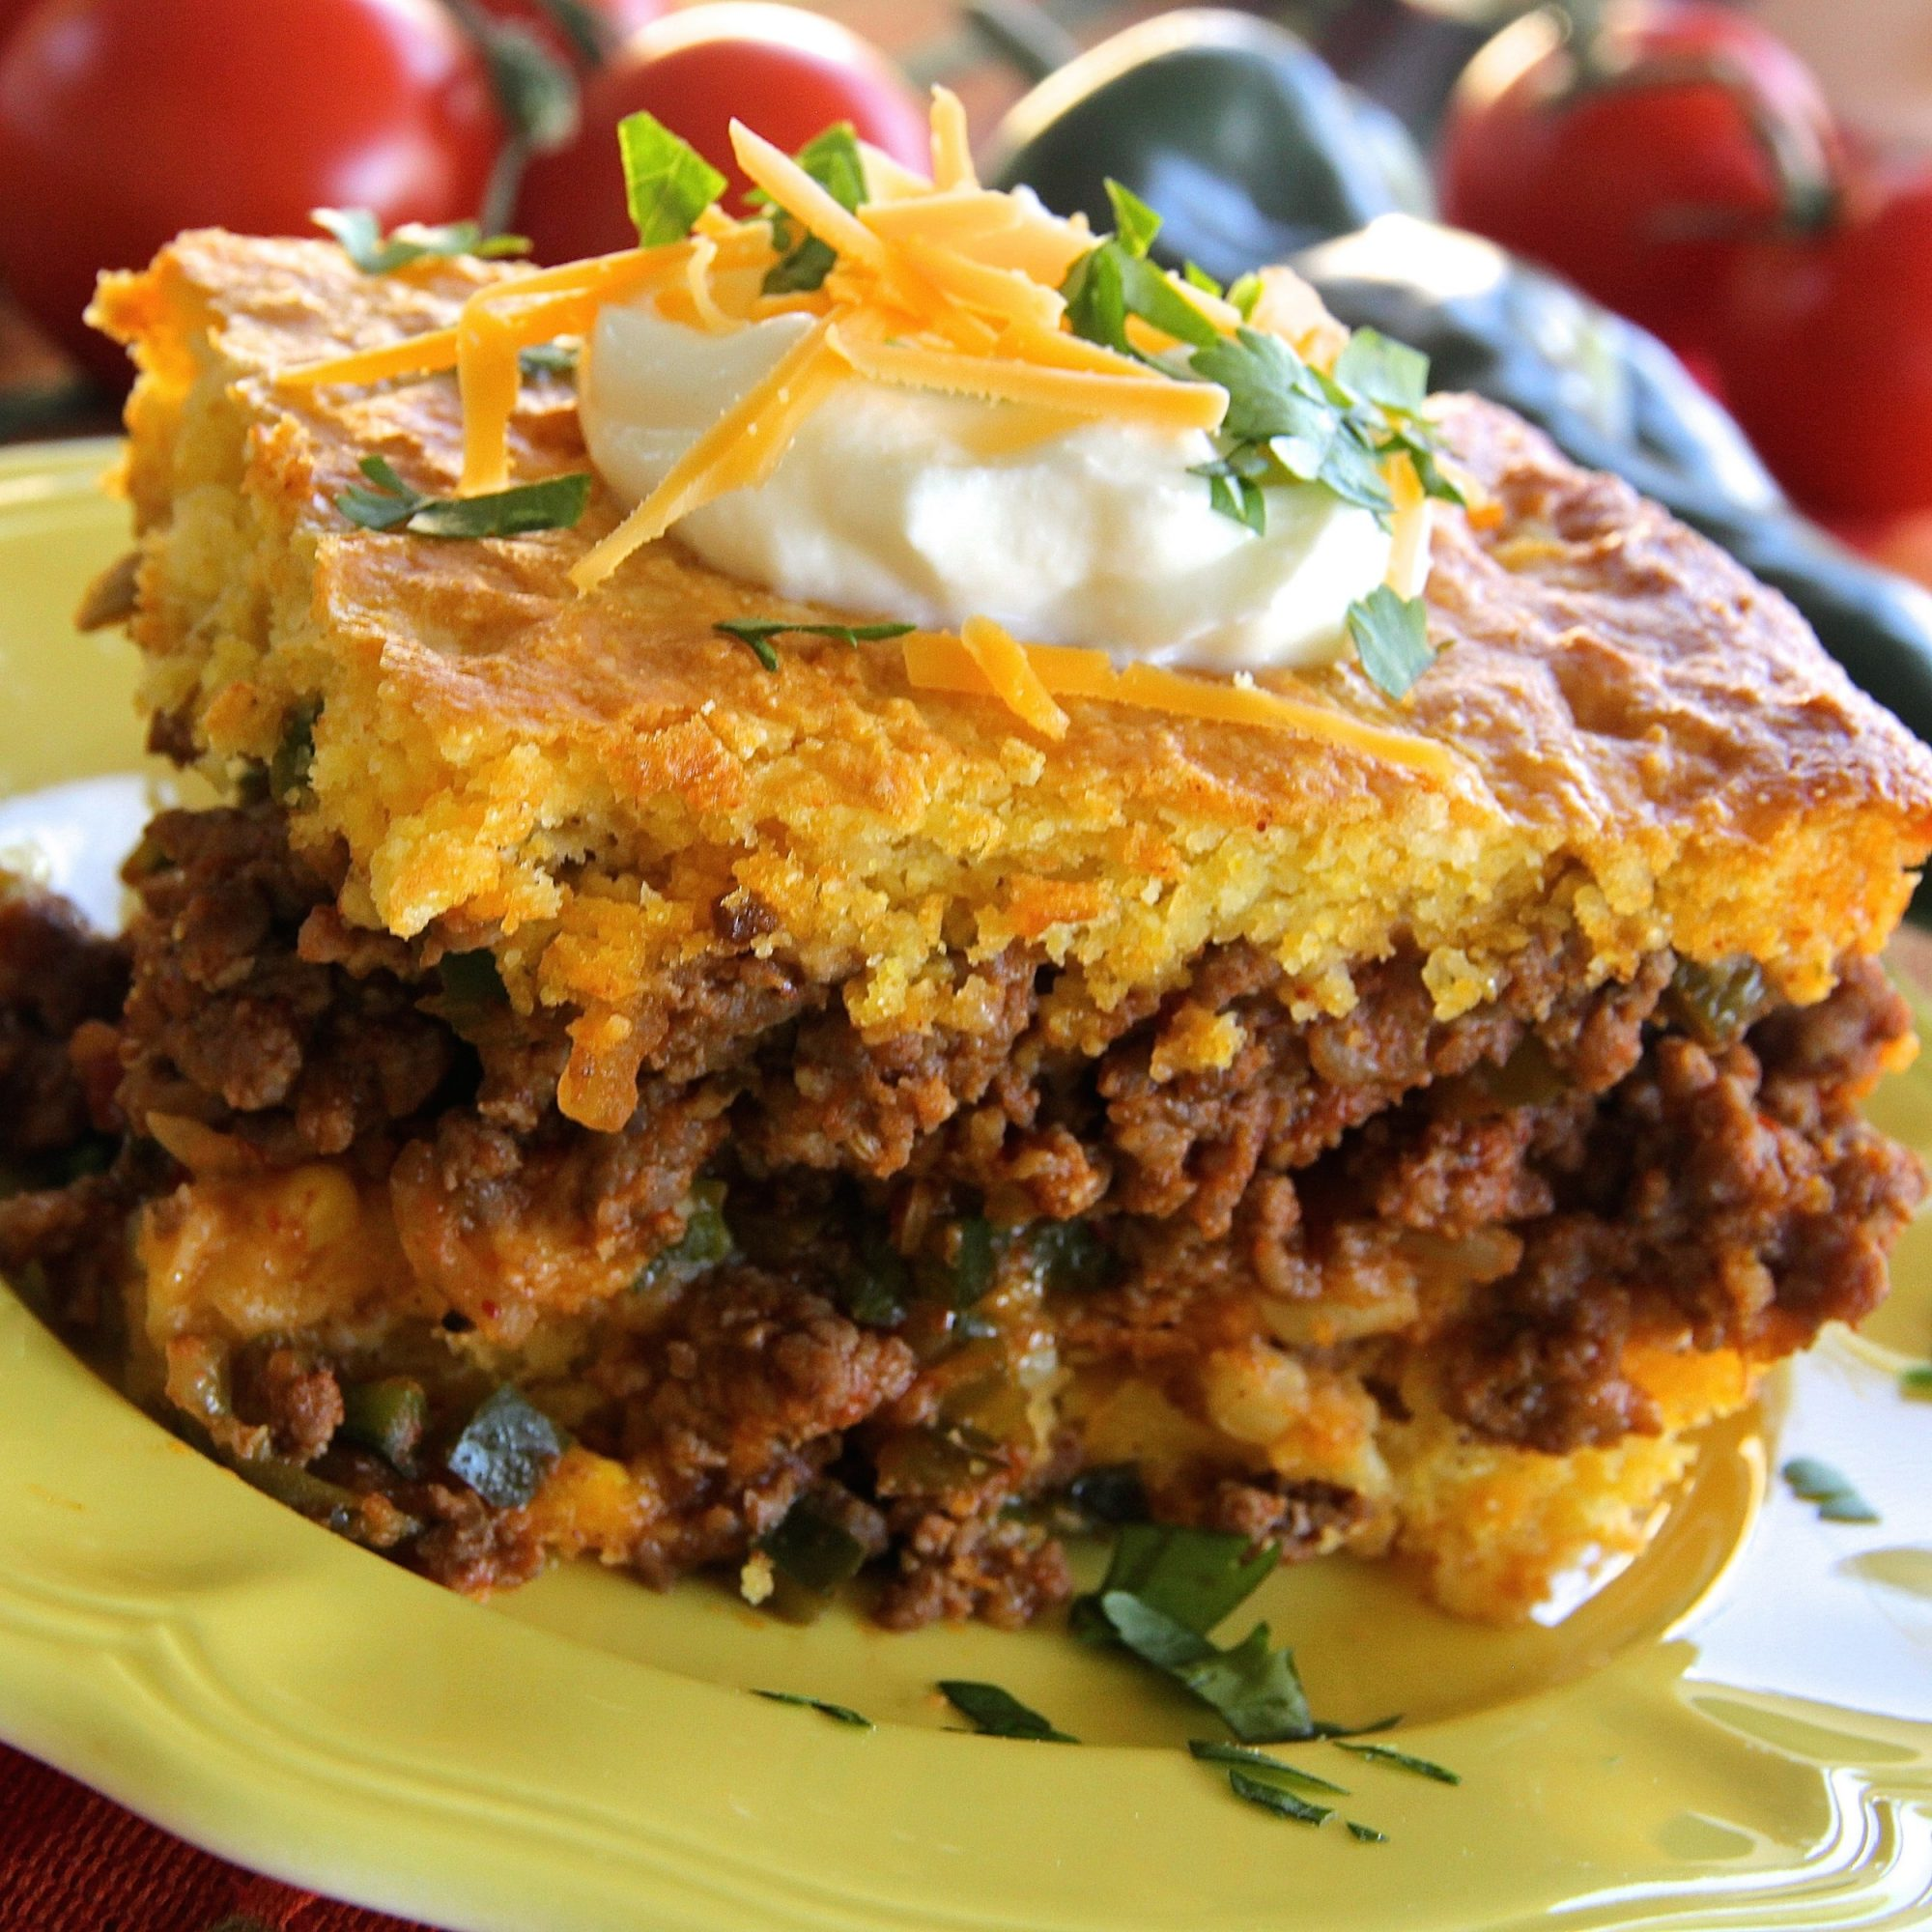 slice of Hot Tamale Pie topped with sour cream and cheese